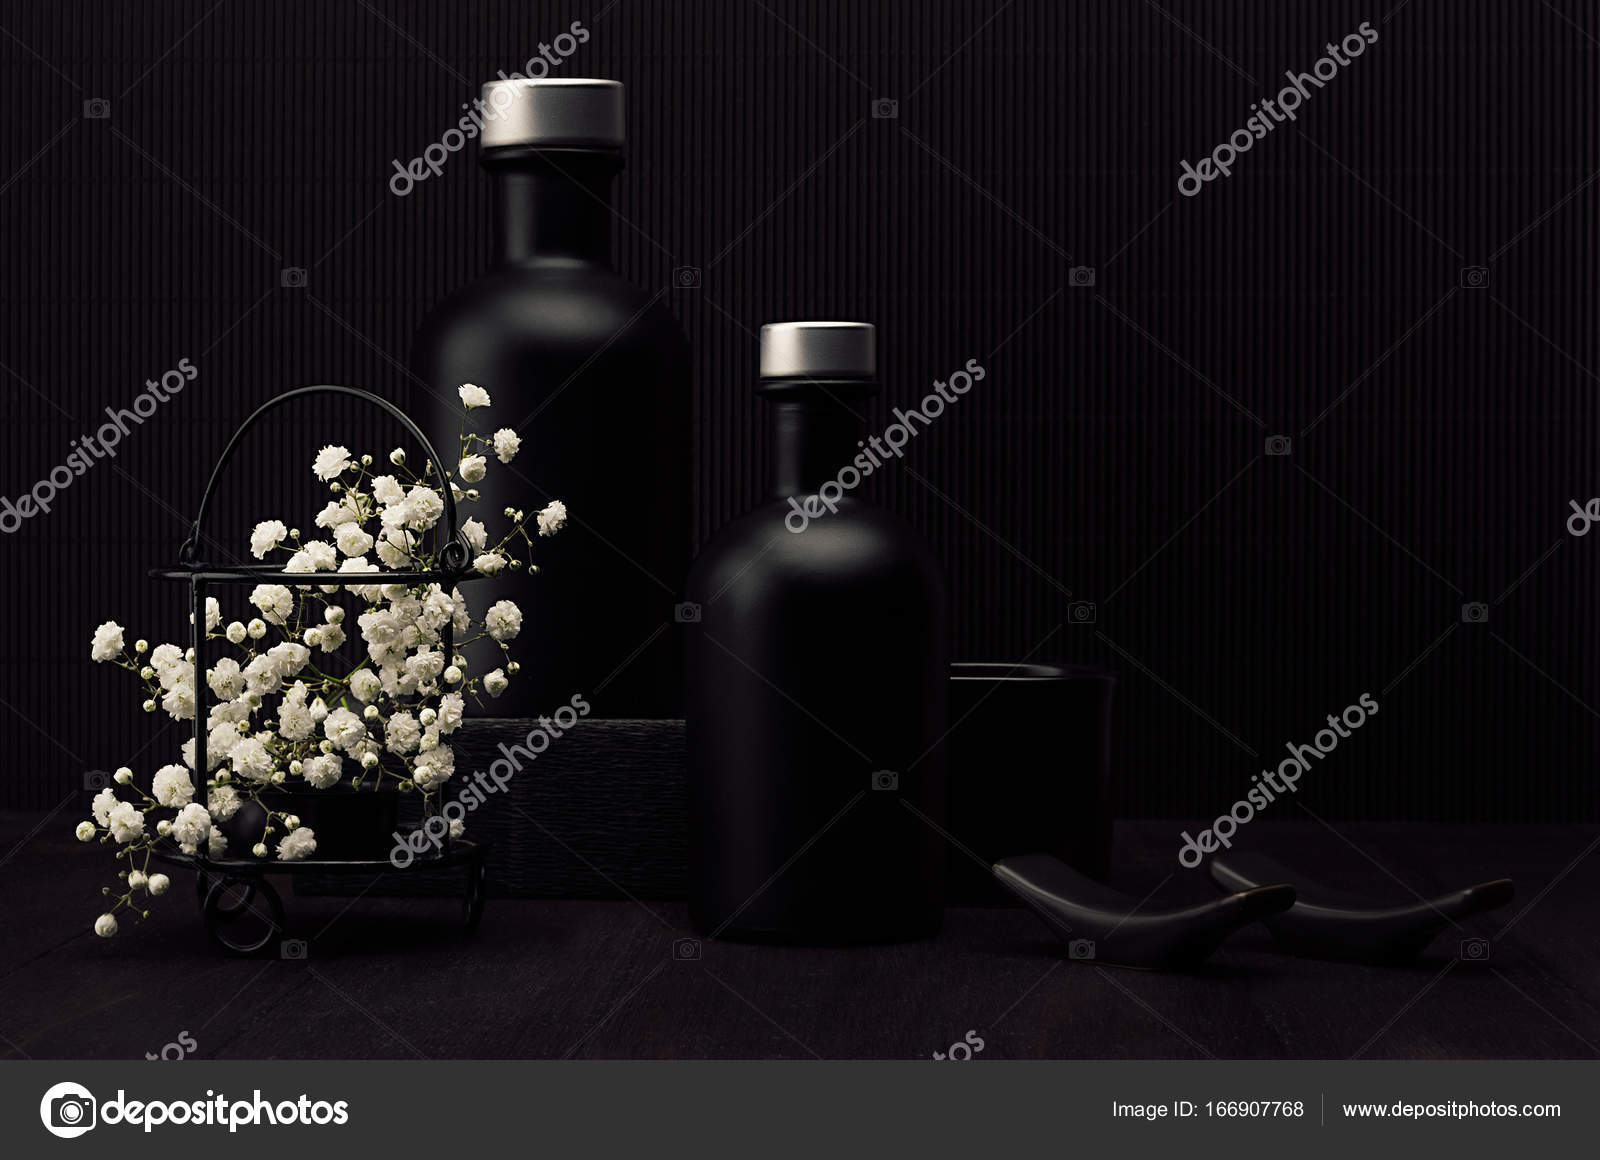 Exquisite Home Designers. Noir exquisite home decor with blank black cosmetics bottles  white small flowers on dark wood